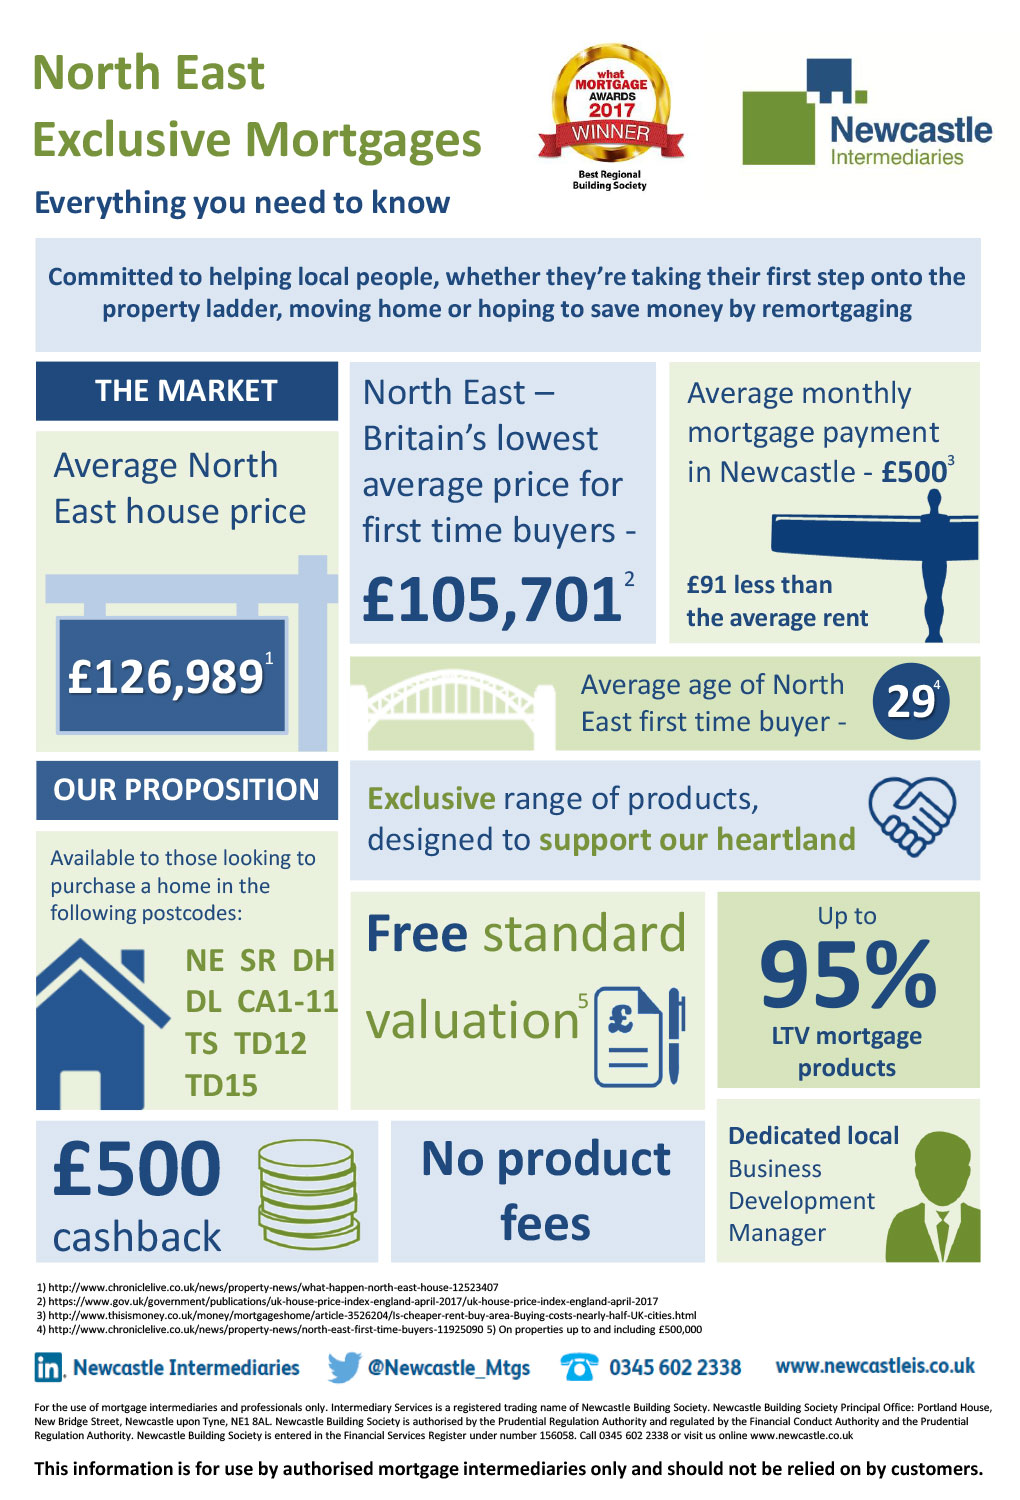 North East Mortgage Exclusives Infographic